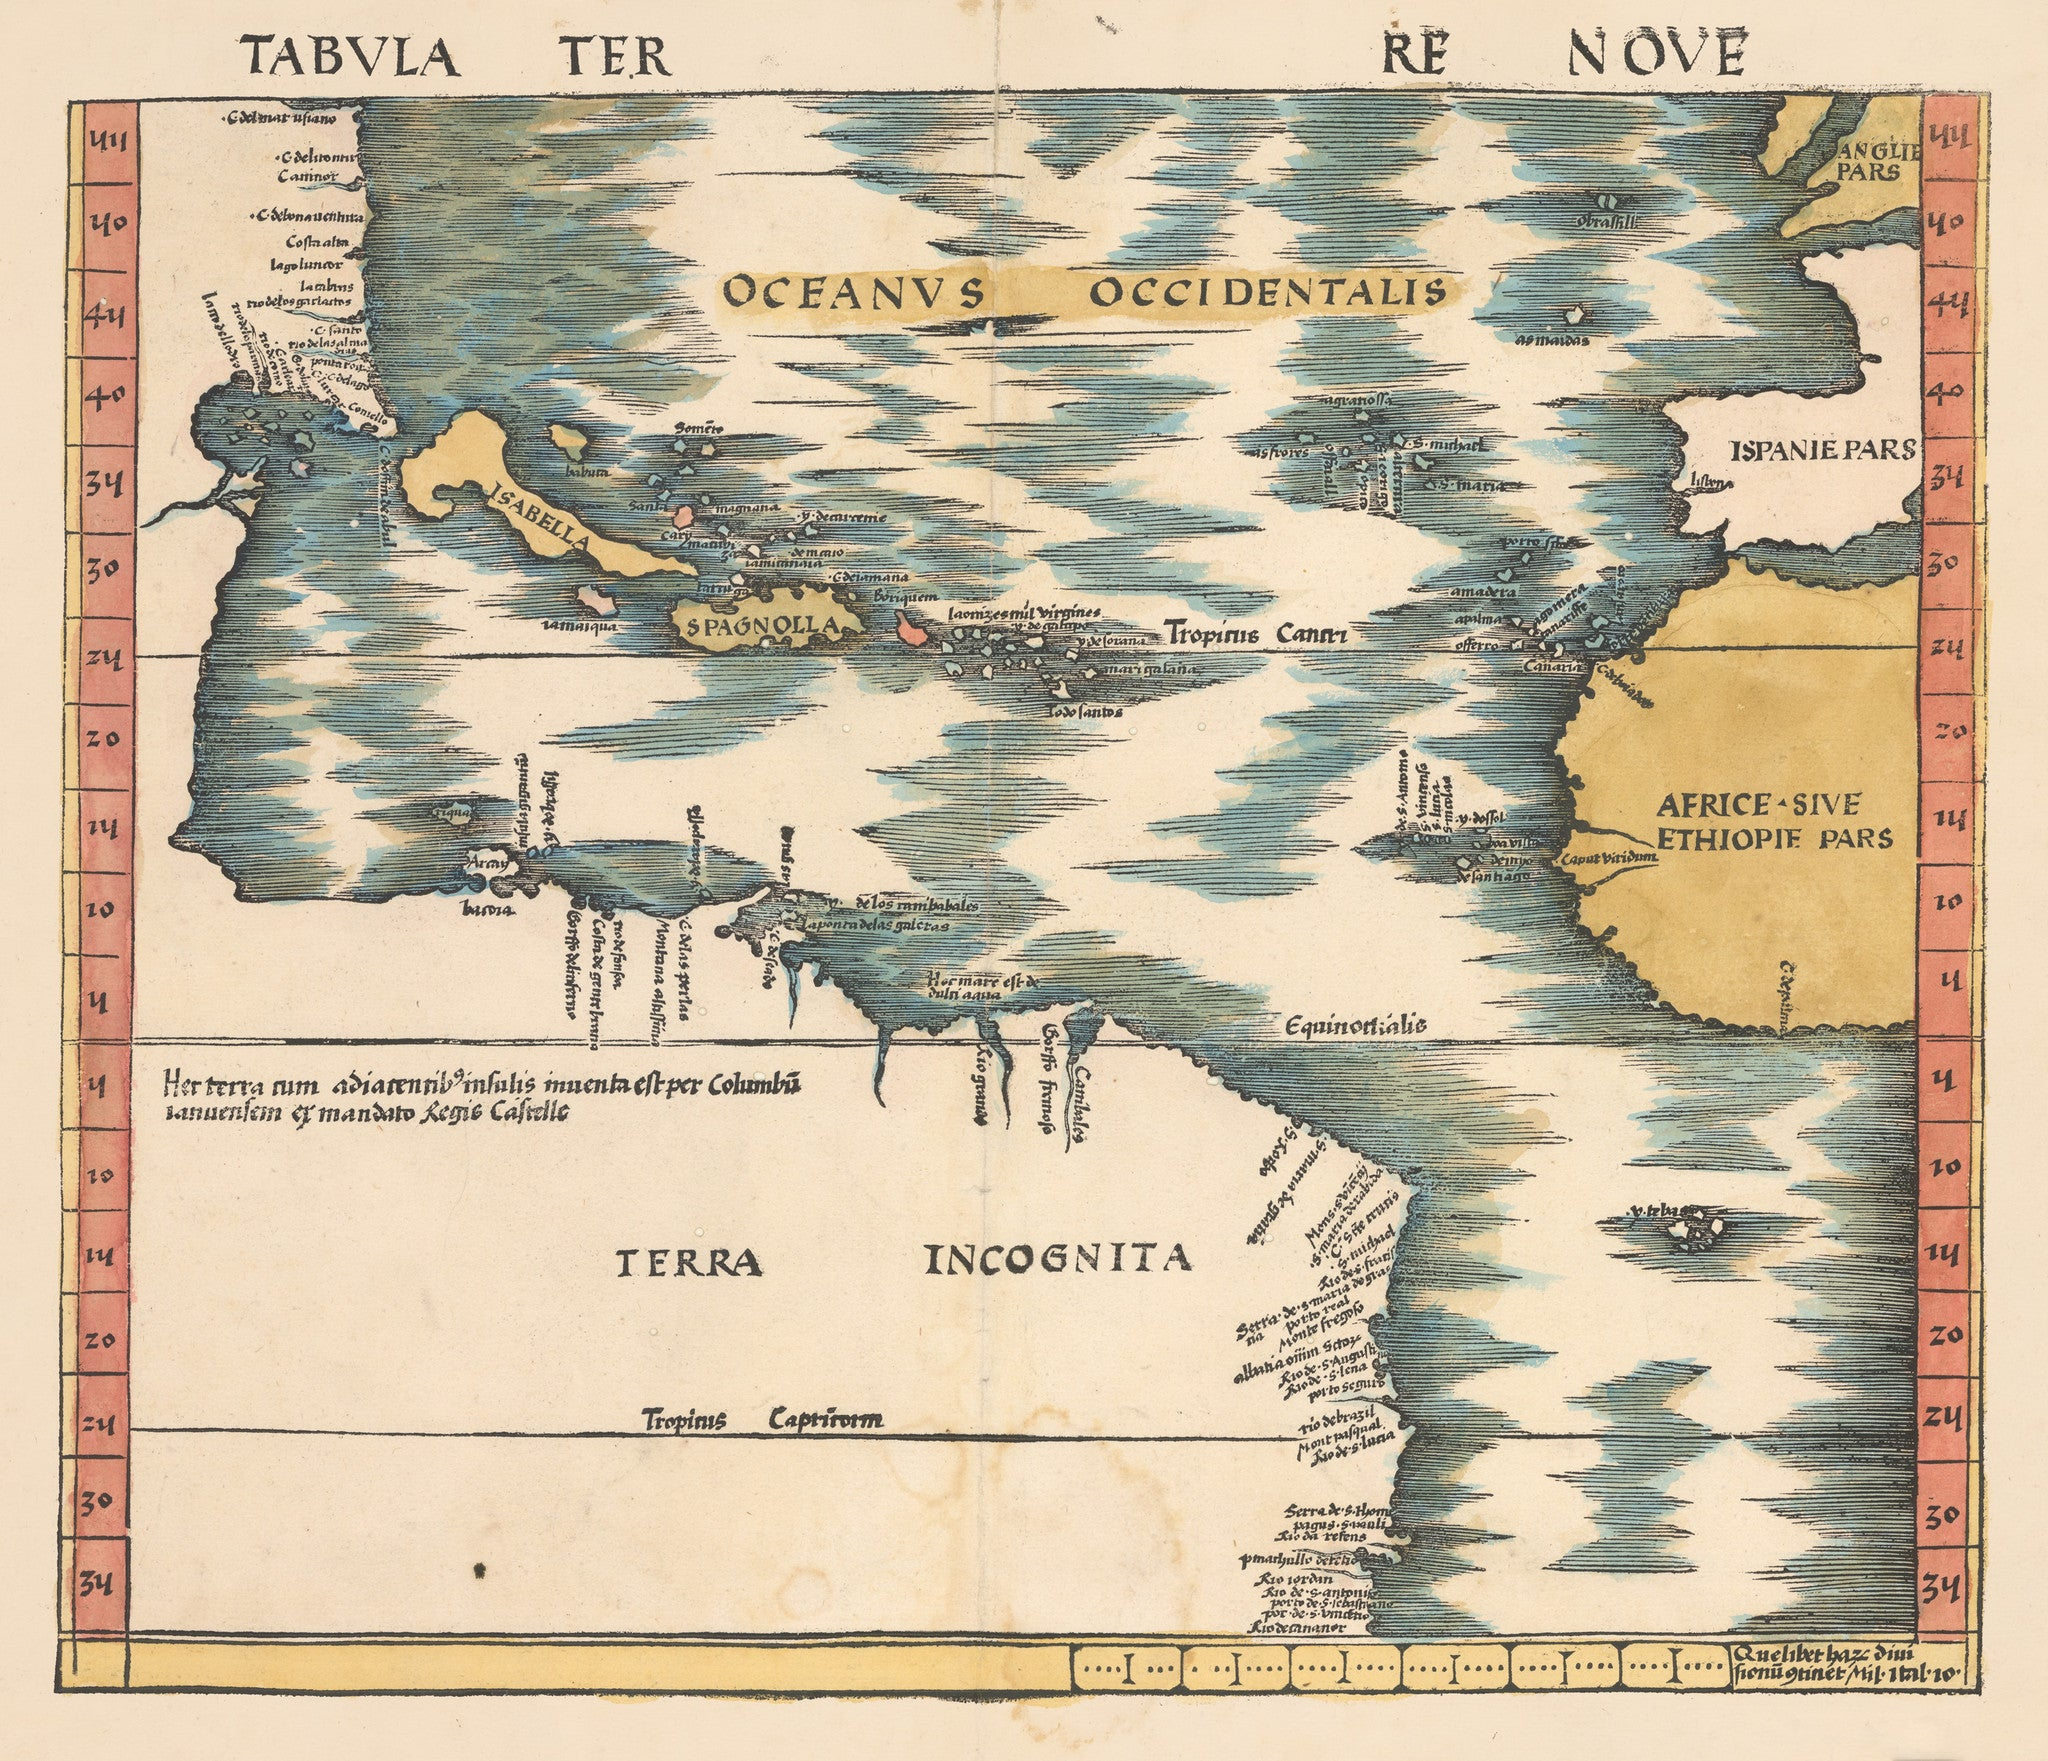 Tabula Terre Nove (The Admiral's Map) By: Martin Waldseemuller 1513